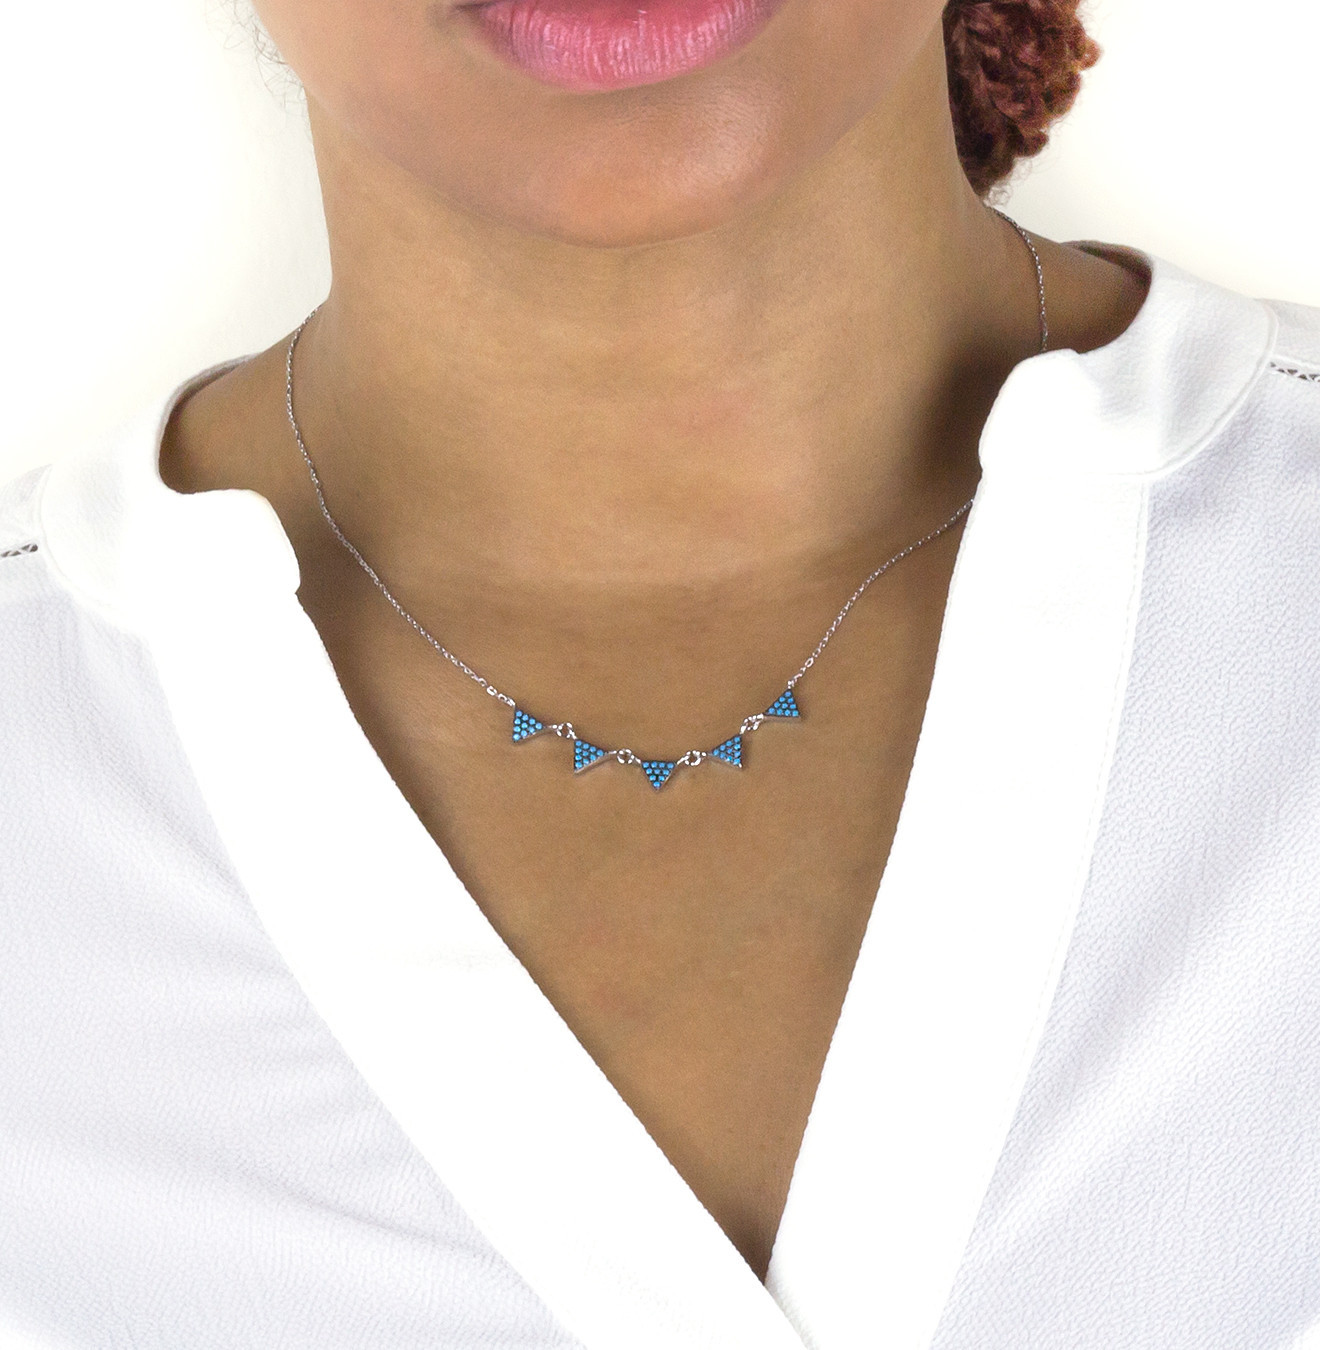 Lavune necklaces 100096 2